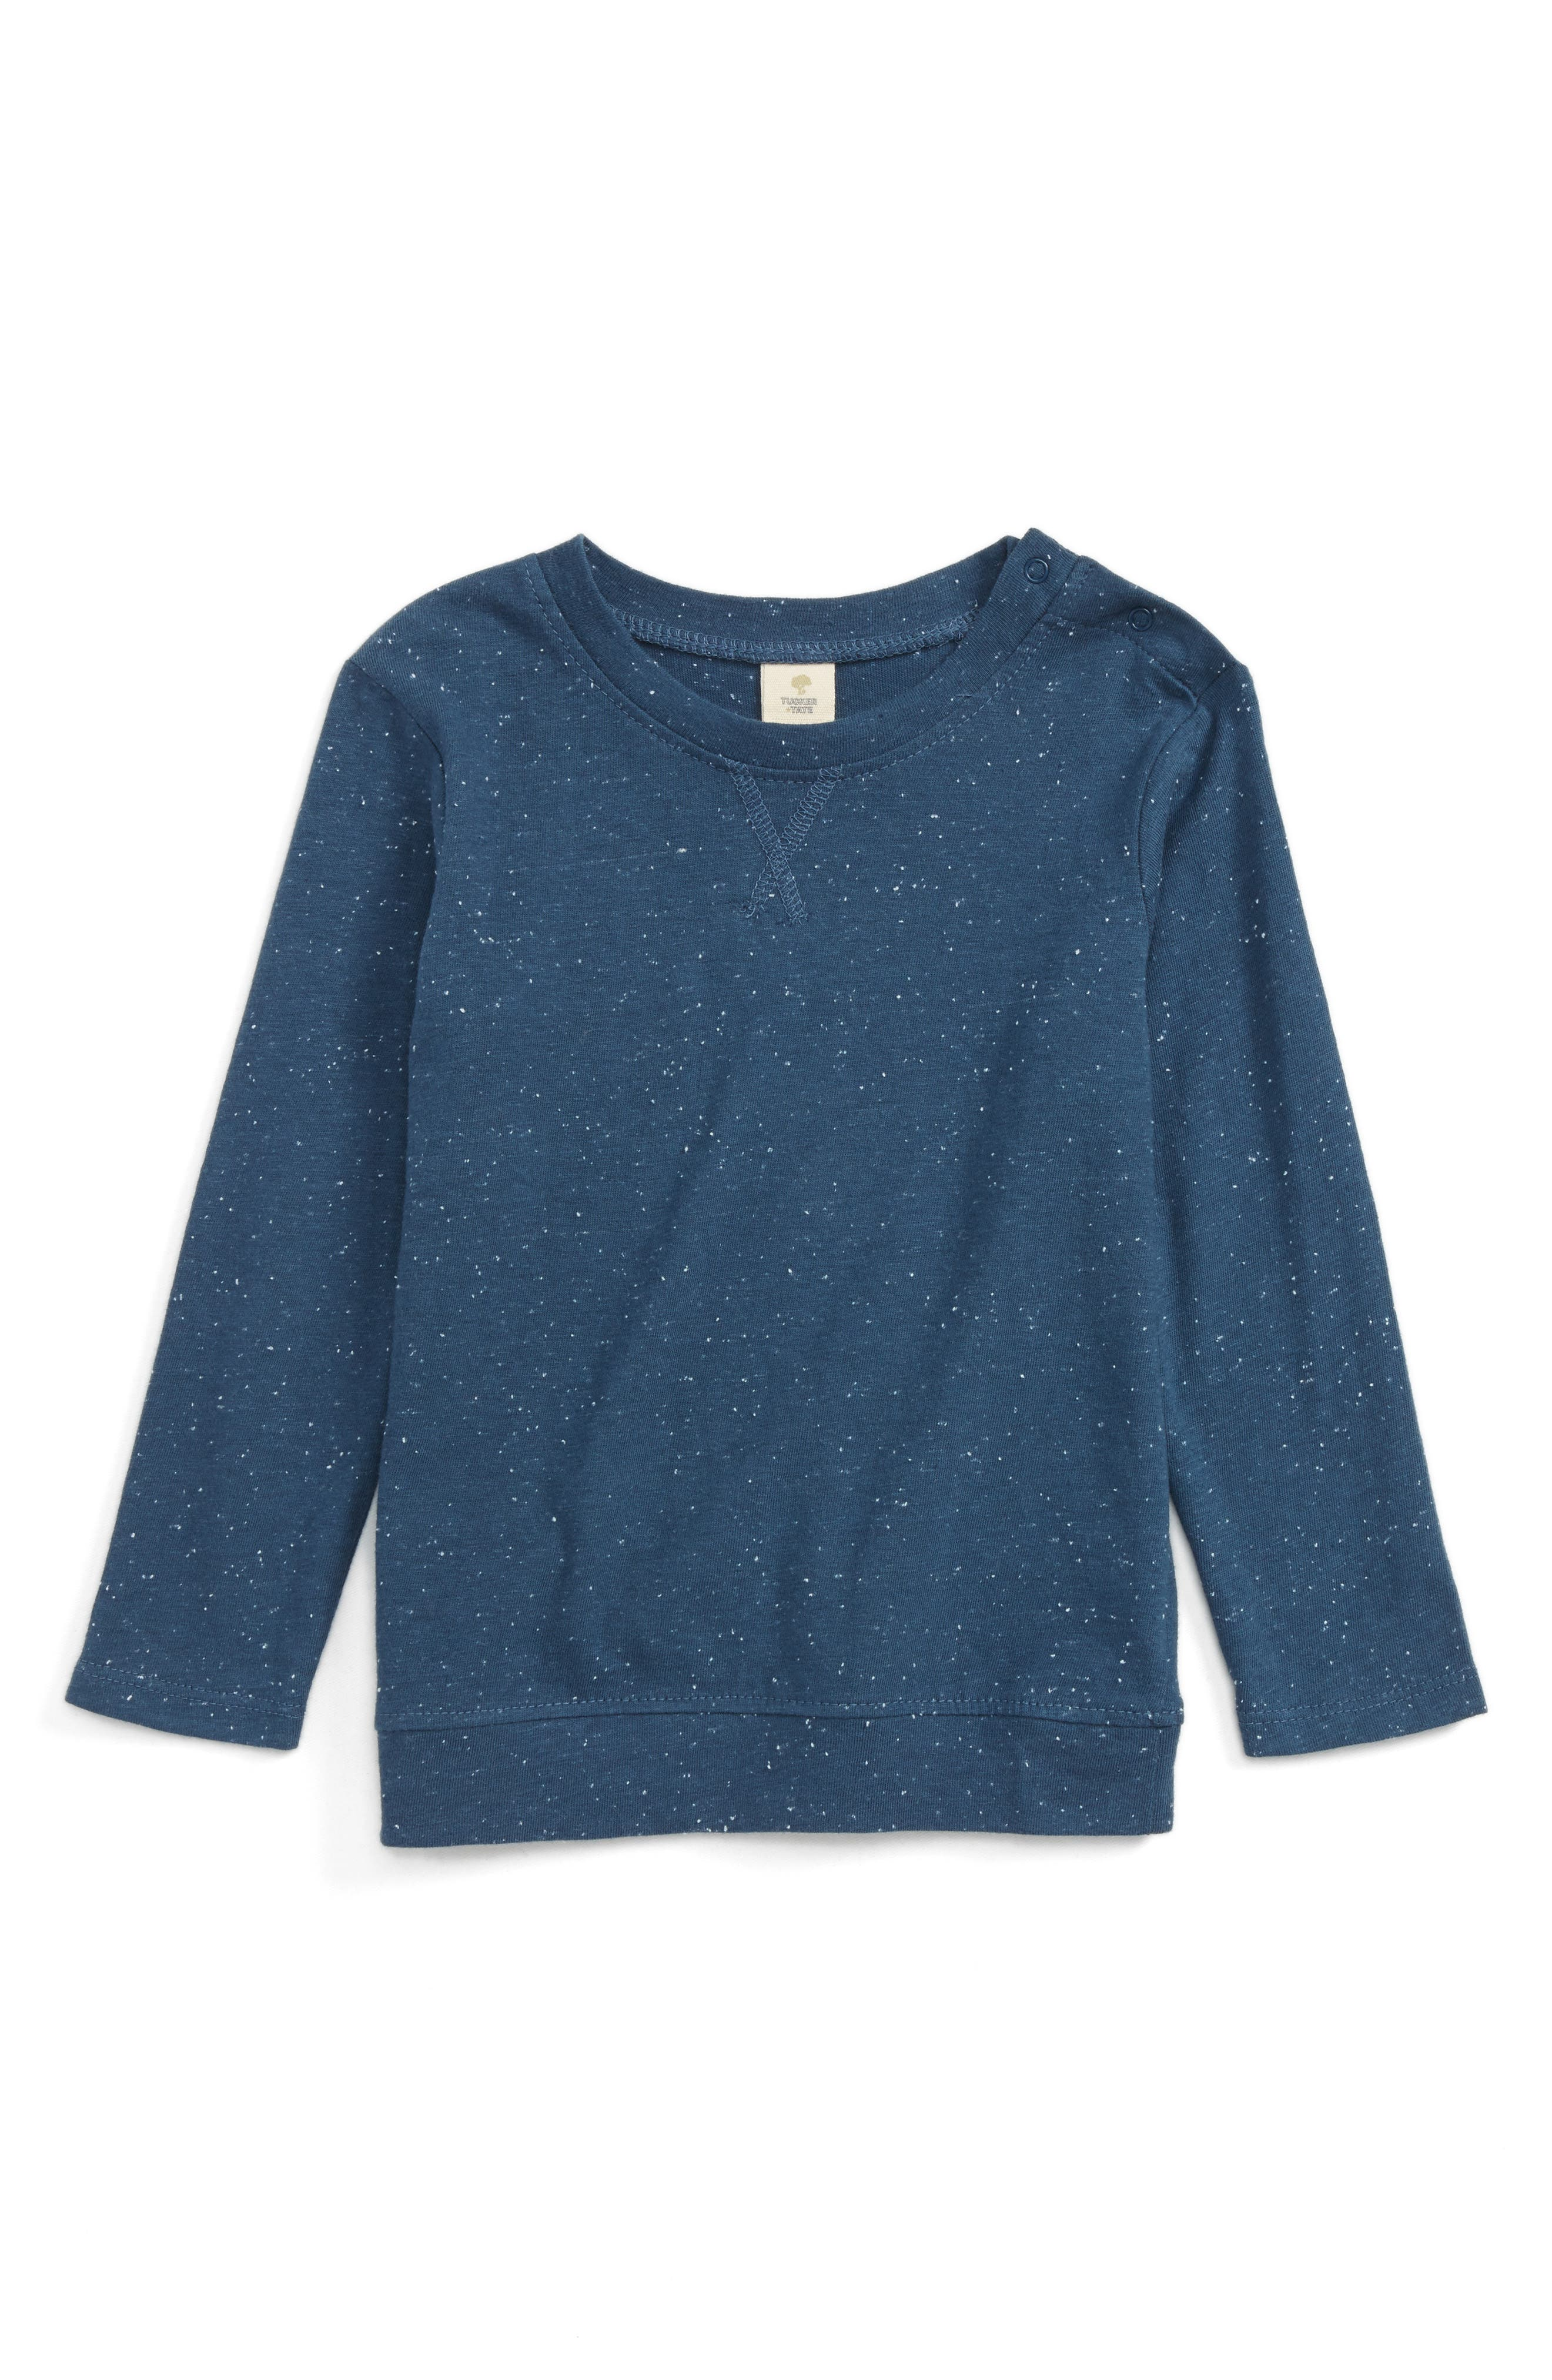 Tucker + Tate Essential Long Sleeve T-Shirt (Baby Boys)